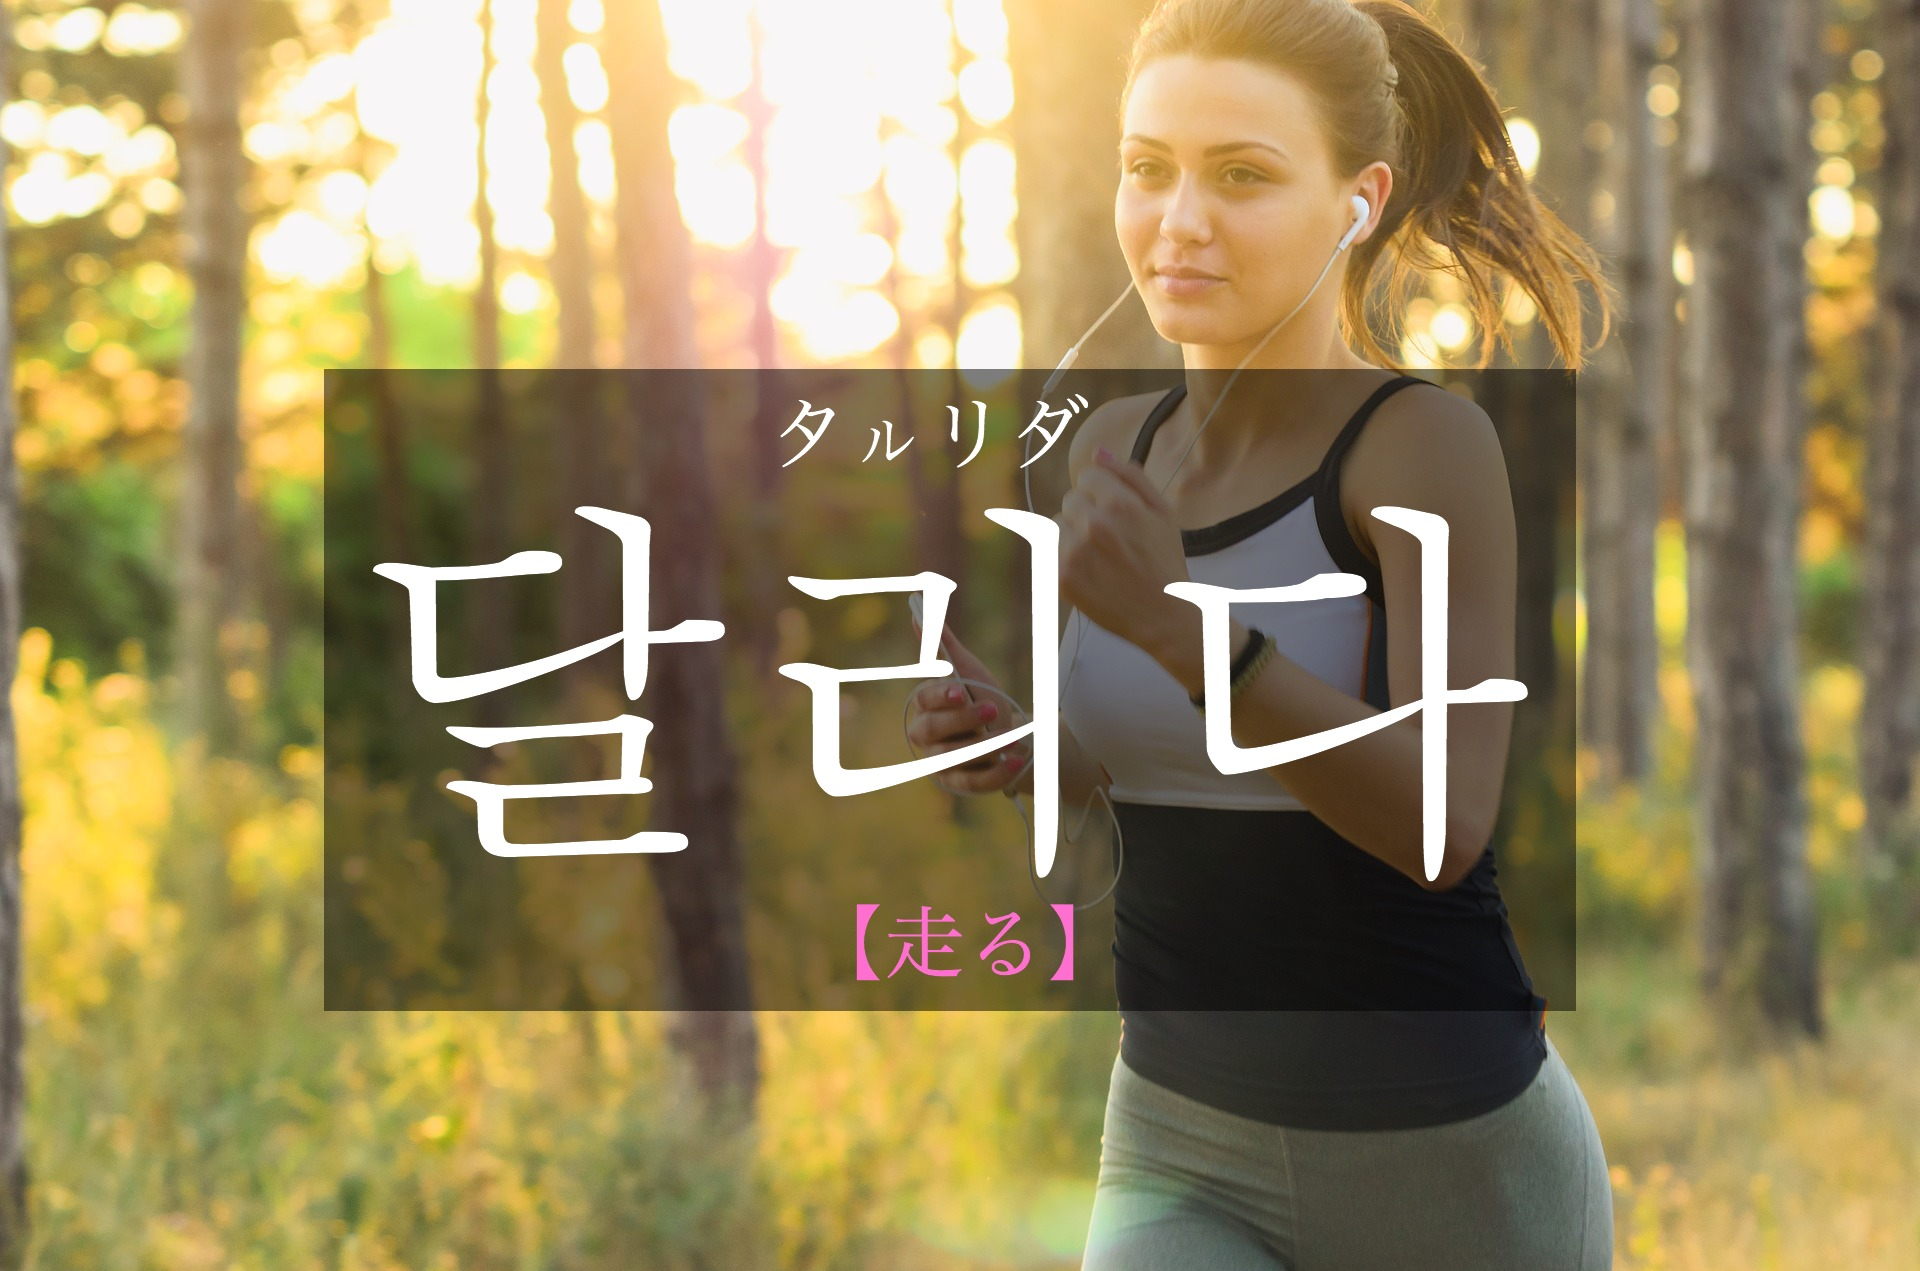 koreanword-run